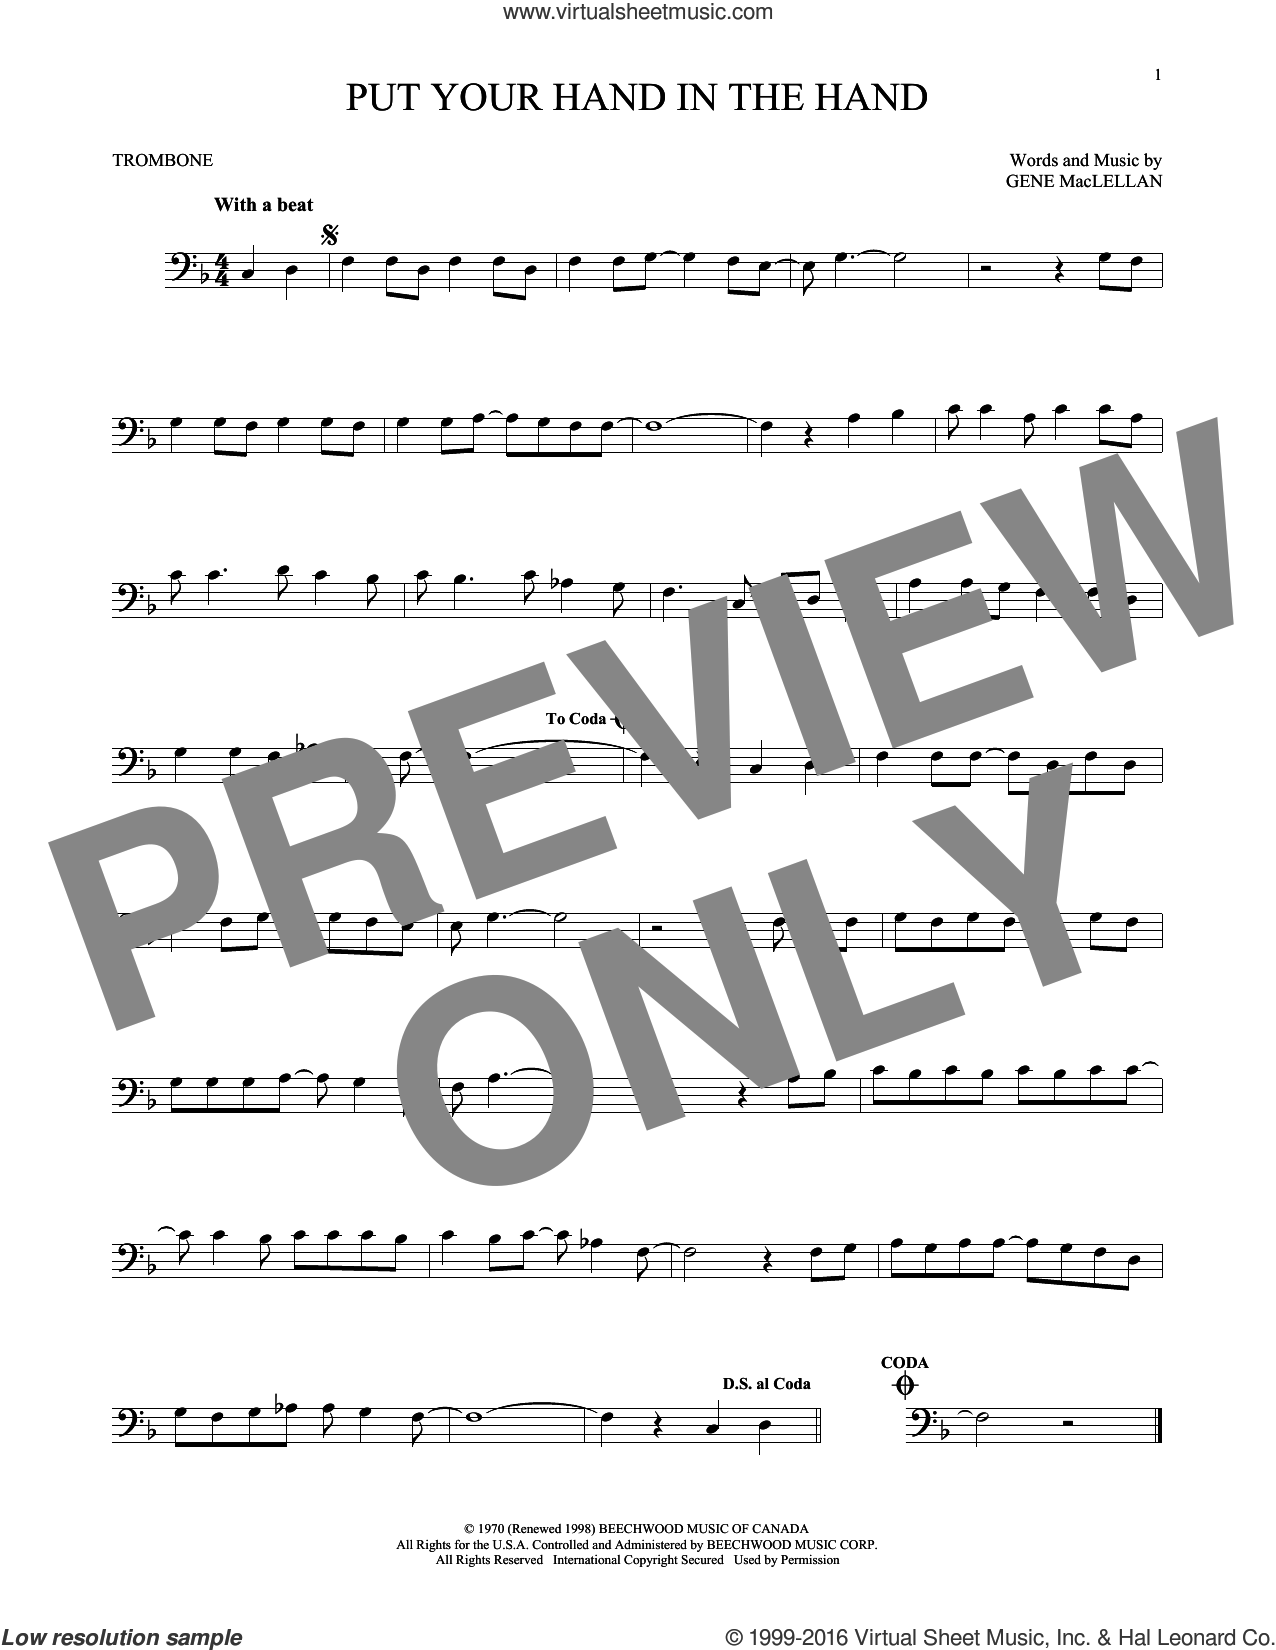 Put Your Hand In The Hand sheet music for trombone solo by Gene MacLellan and MacLellan and Ocean, intermediate skill level